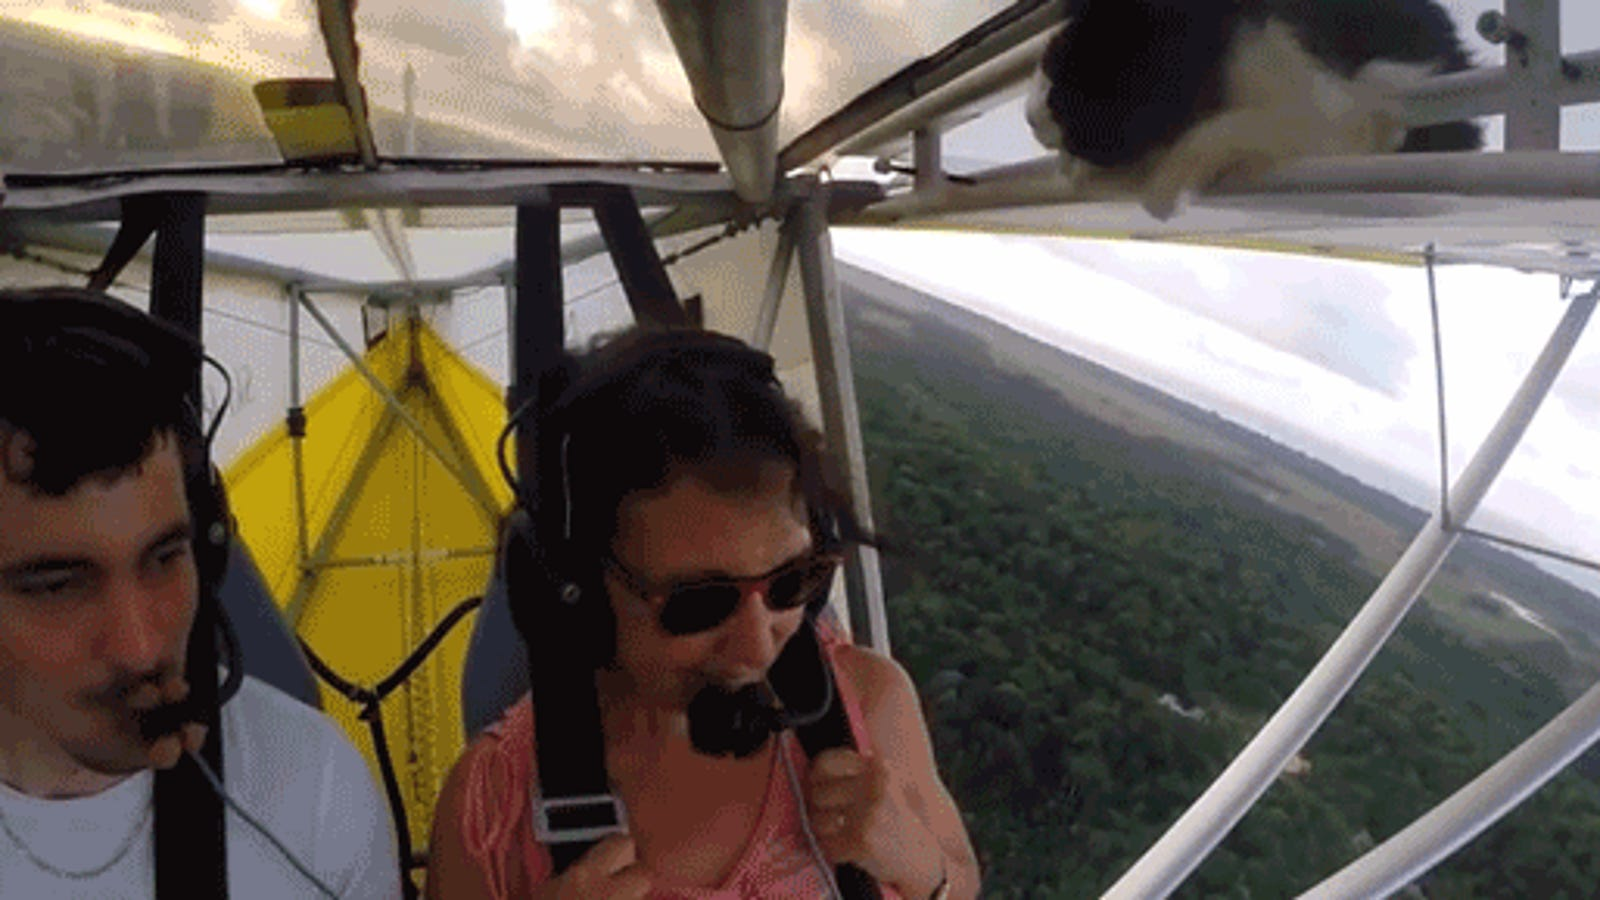 Stowaway Cat Sneaks Into An Airplane And Rides The Wing Back To Earth